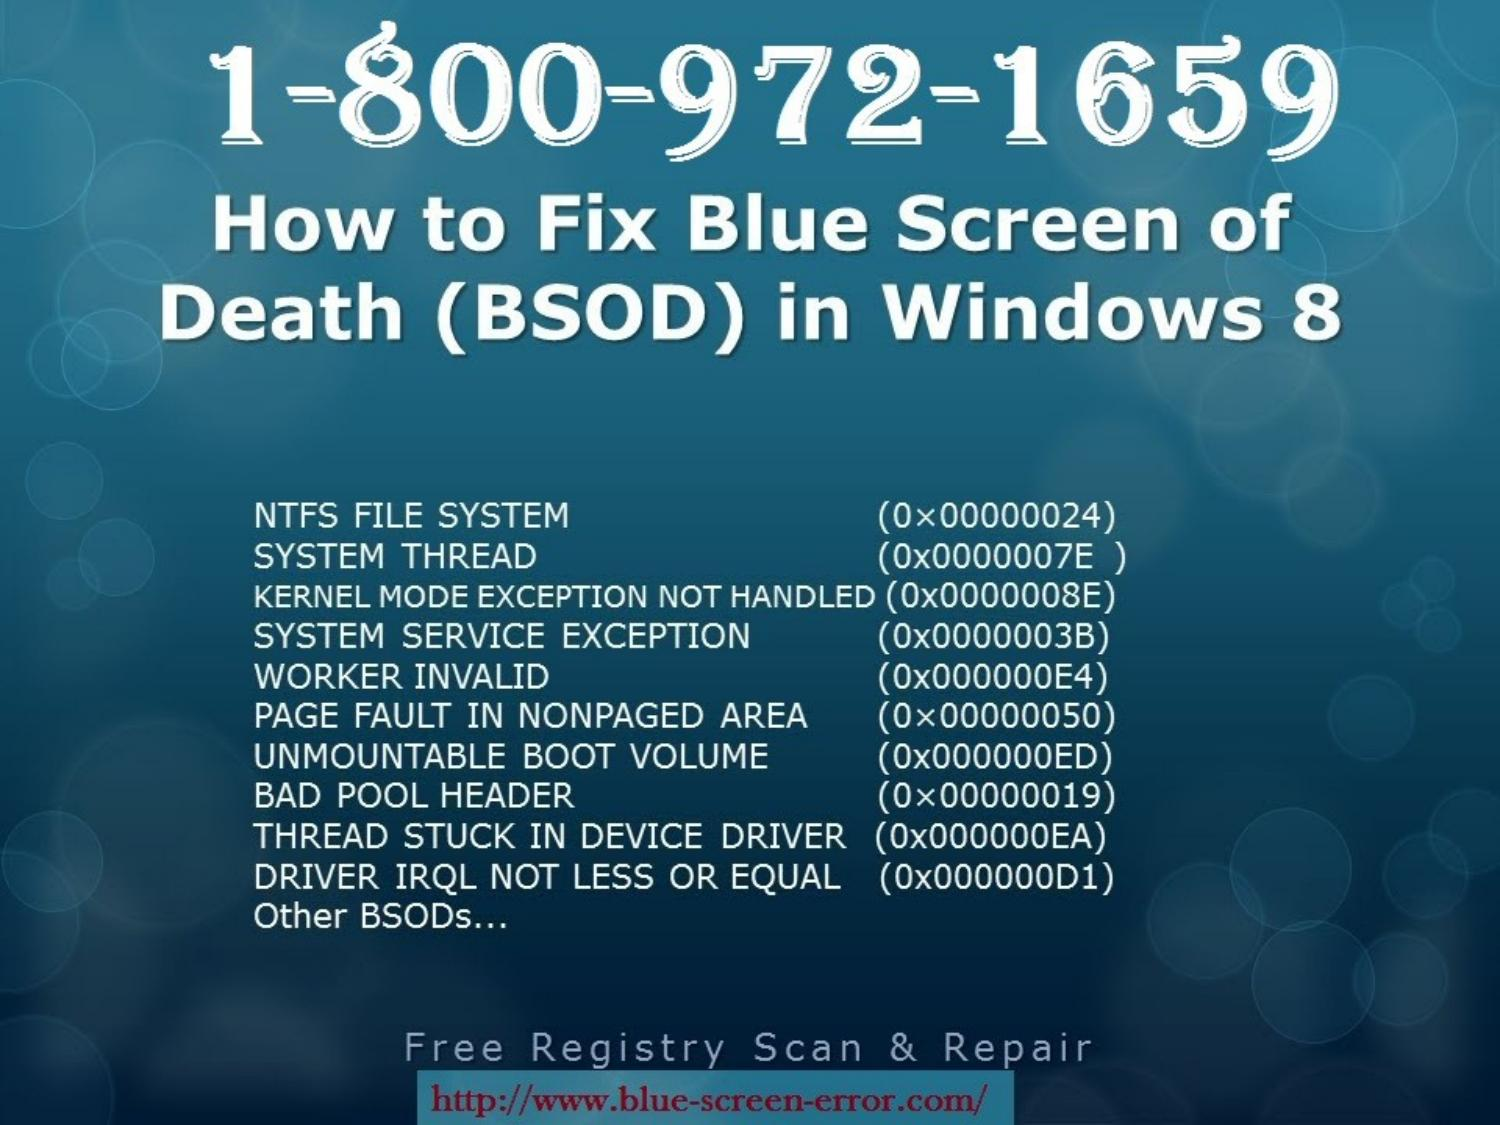 blue screen thread stuck in device driver